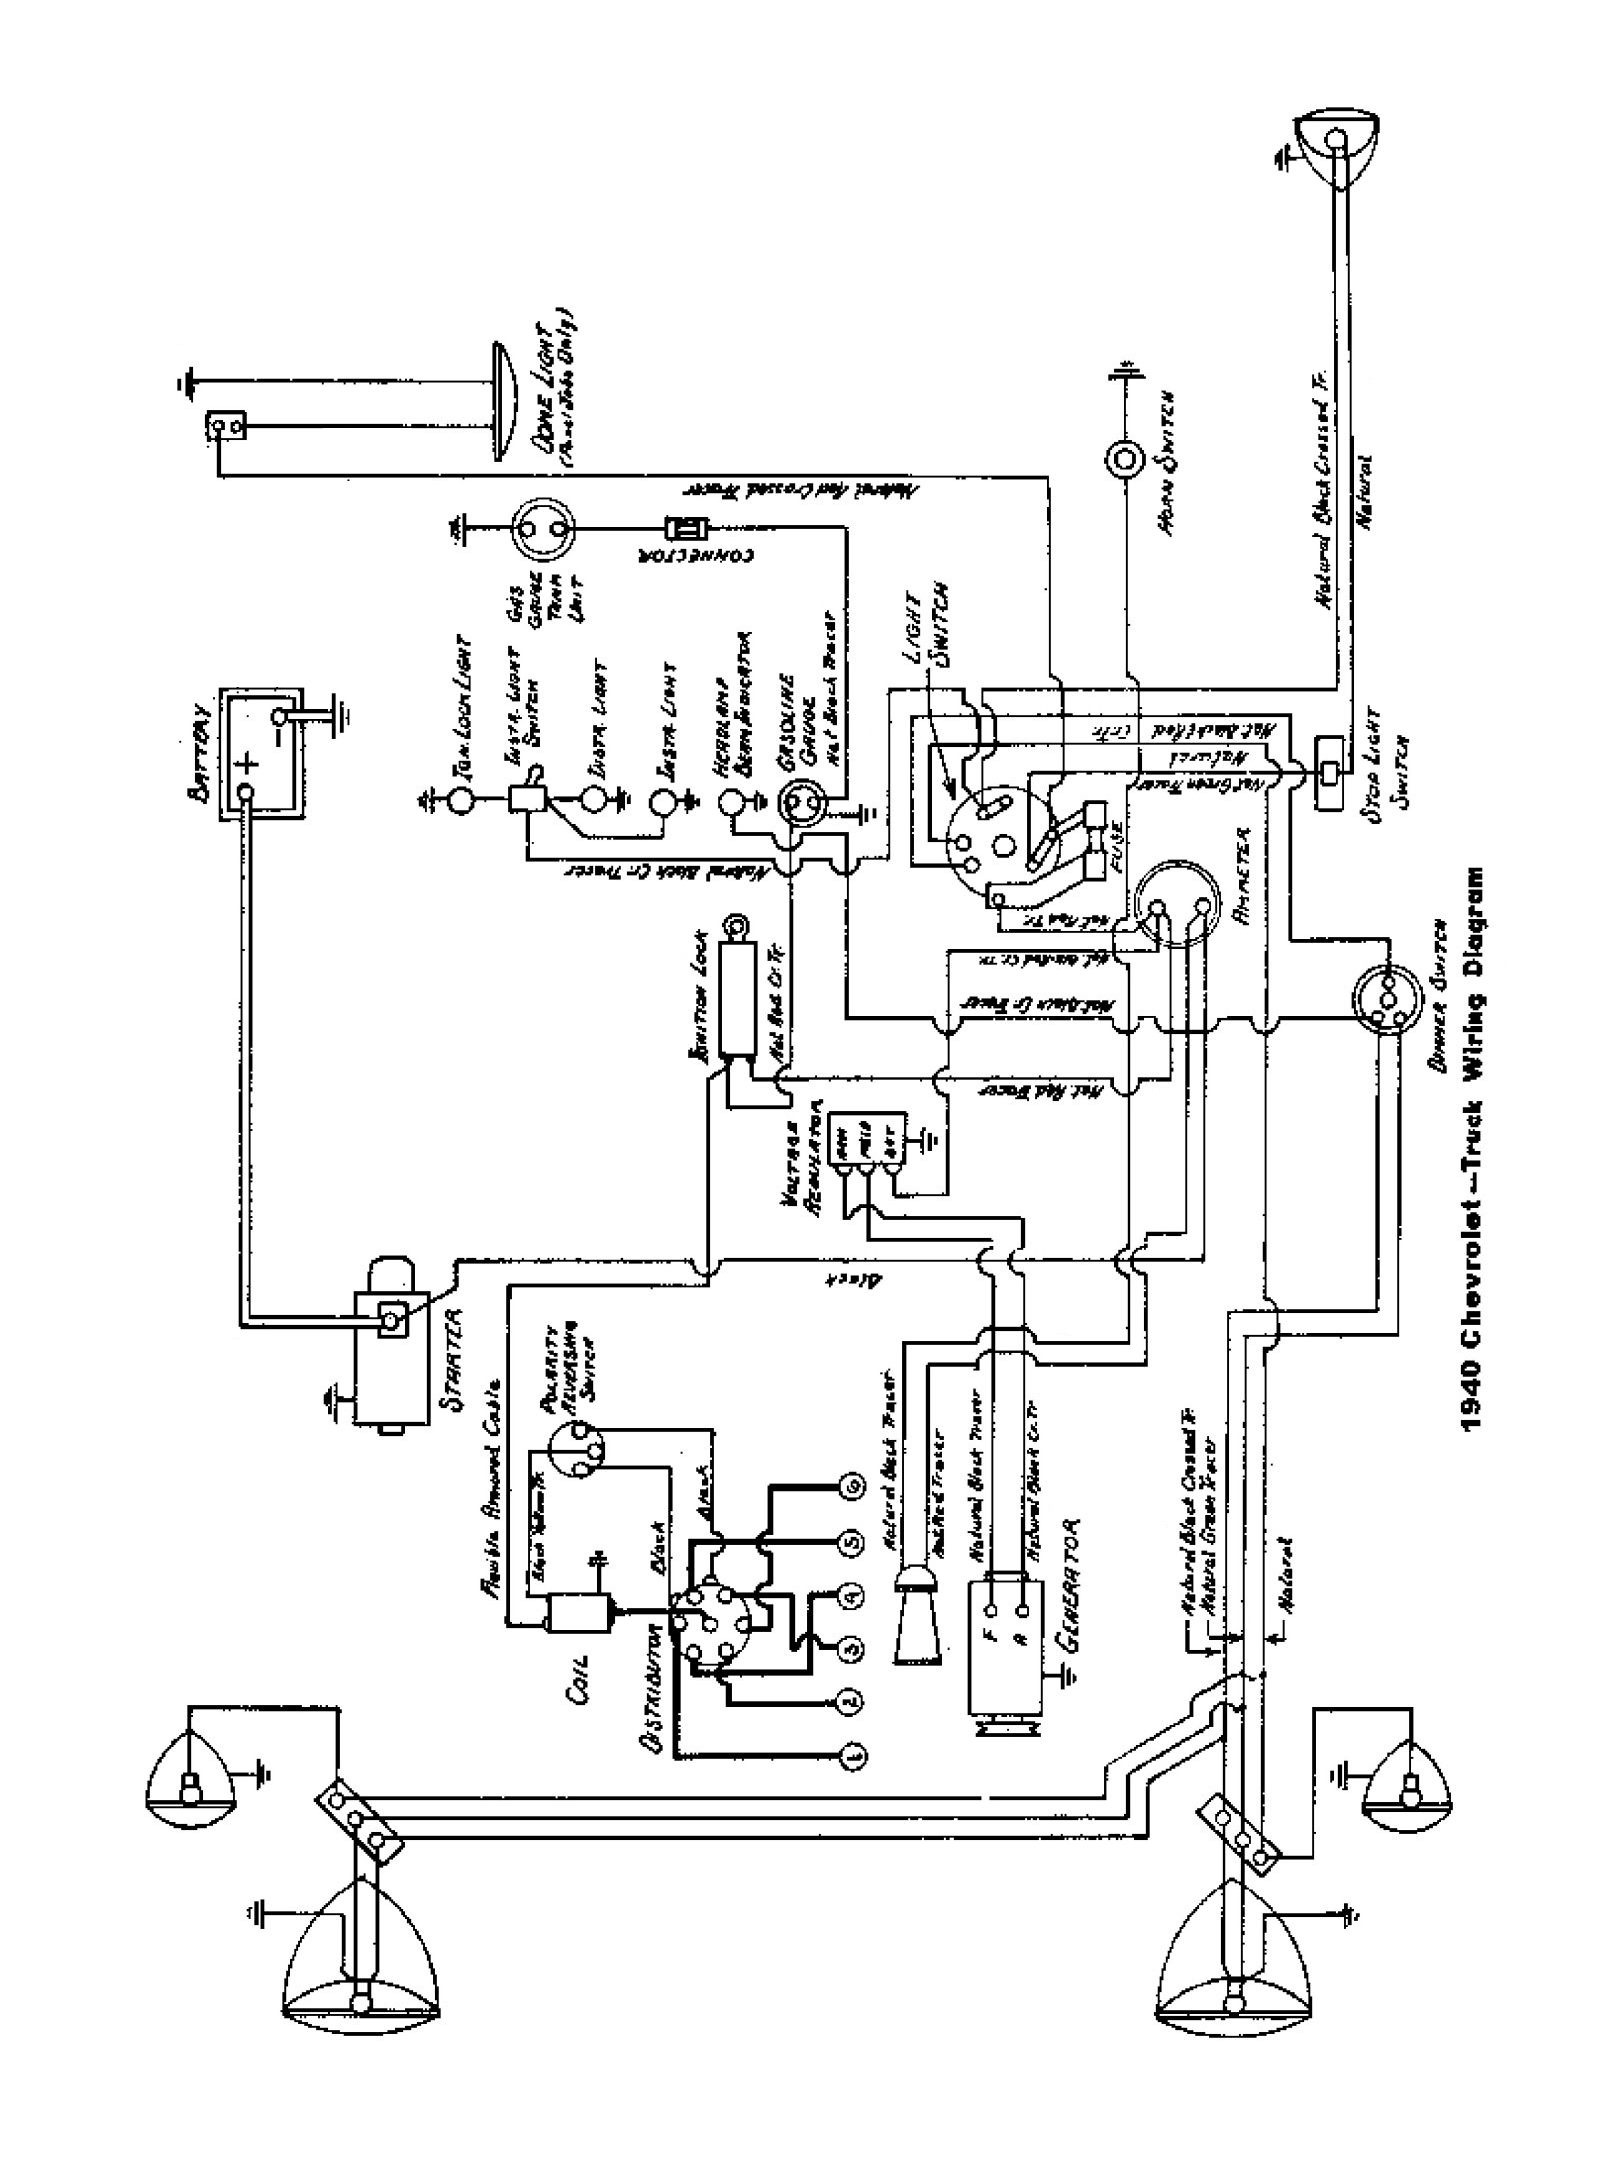 40truck chevy wiring diagrams 1957 chevy wiring harness at bayanpartner.co